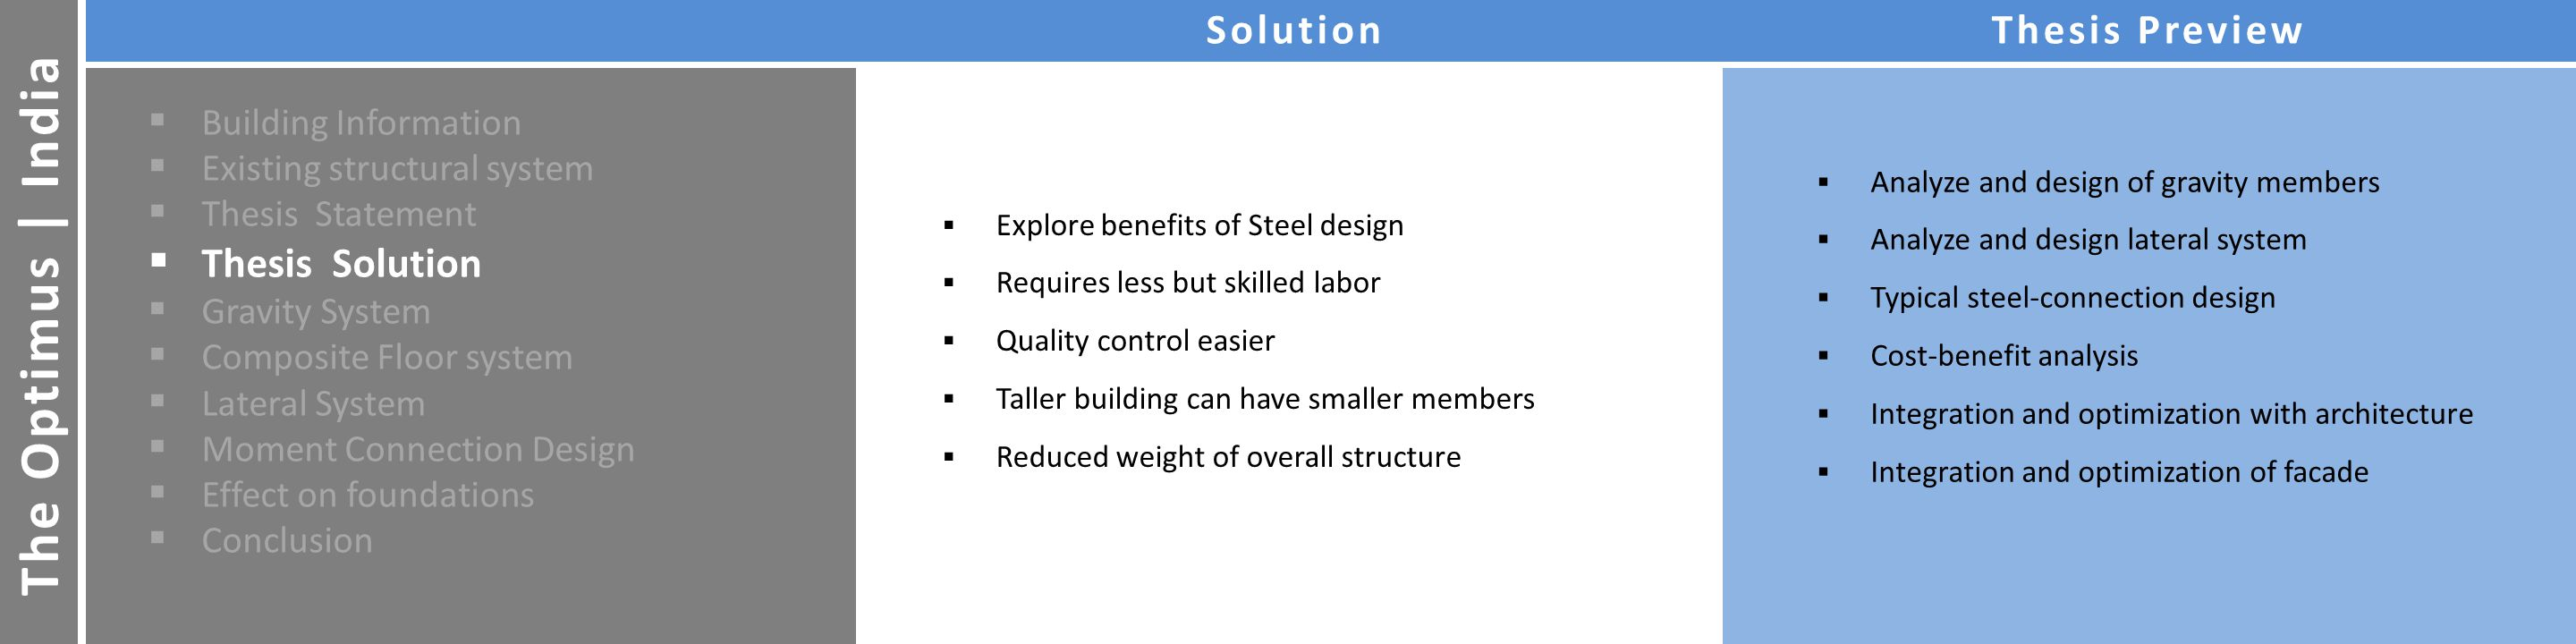 Facades Architecture The Optimus | India SolutionThesis Preview  Building Information  Existing structural system  Thesis Statement  Thesis Solution  Gravity System  Composite Floor system  Lateral System  Moment Connection Design  Effect on foundations  Conclusion  Explore benefits of Steel design  Requires less but skilled labor  Quality control easier  Taller building can have smaller members  Reduced weight of overall structure  Analyze and design of gravity members  Analyze and design lateral system  Typical steel-connection design  Cost-benefit analysis  Integration and optimization with architecture  Integration and optimization of facade